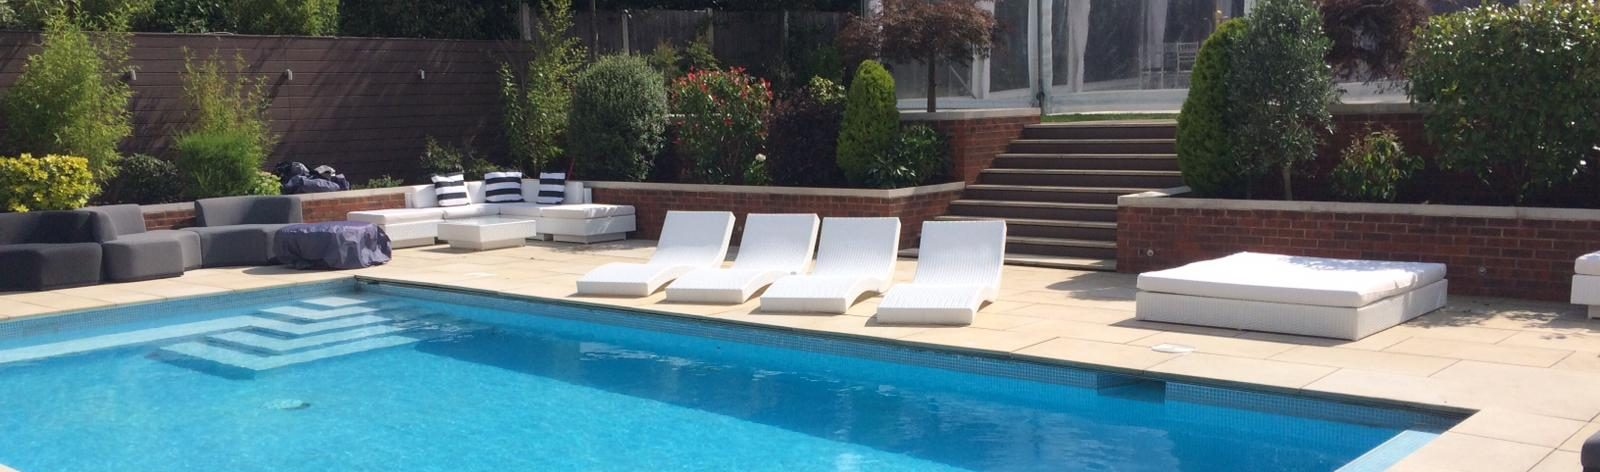 outdoor furniture hire: pool party